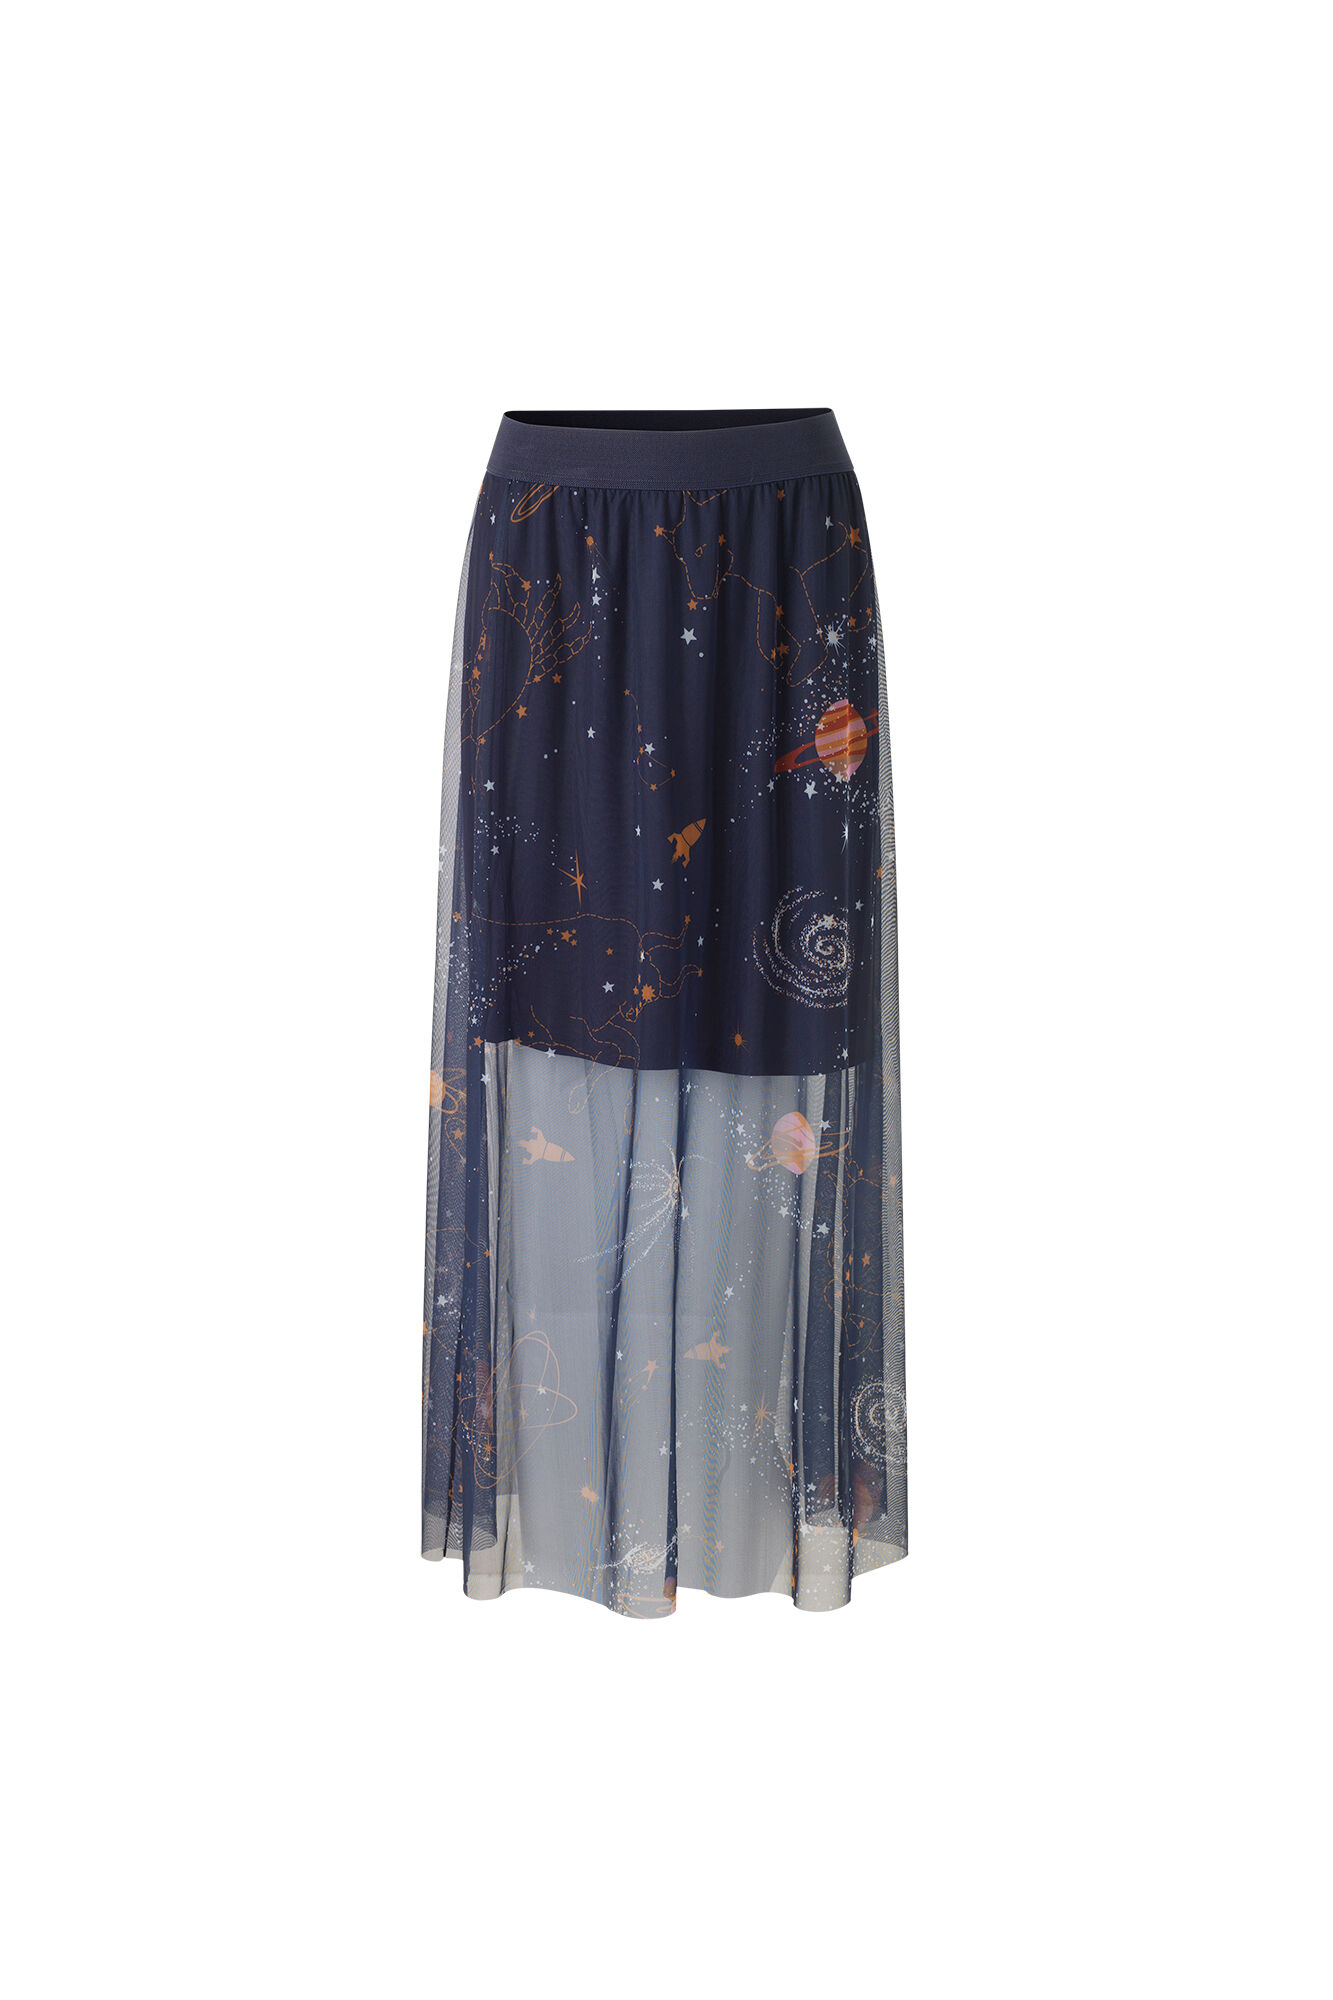 ENZIGGY SKIRT AOP 5966, COSMIC AOP